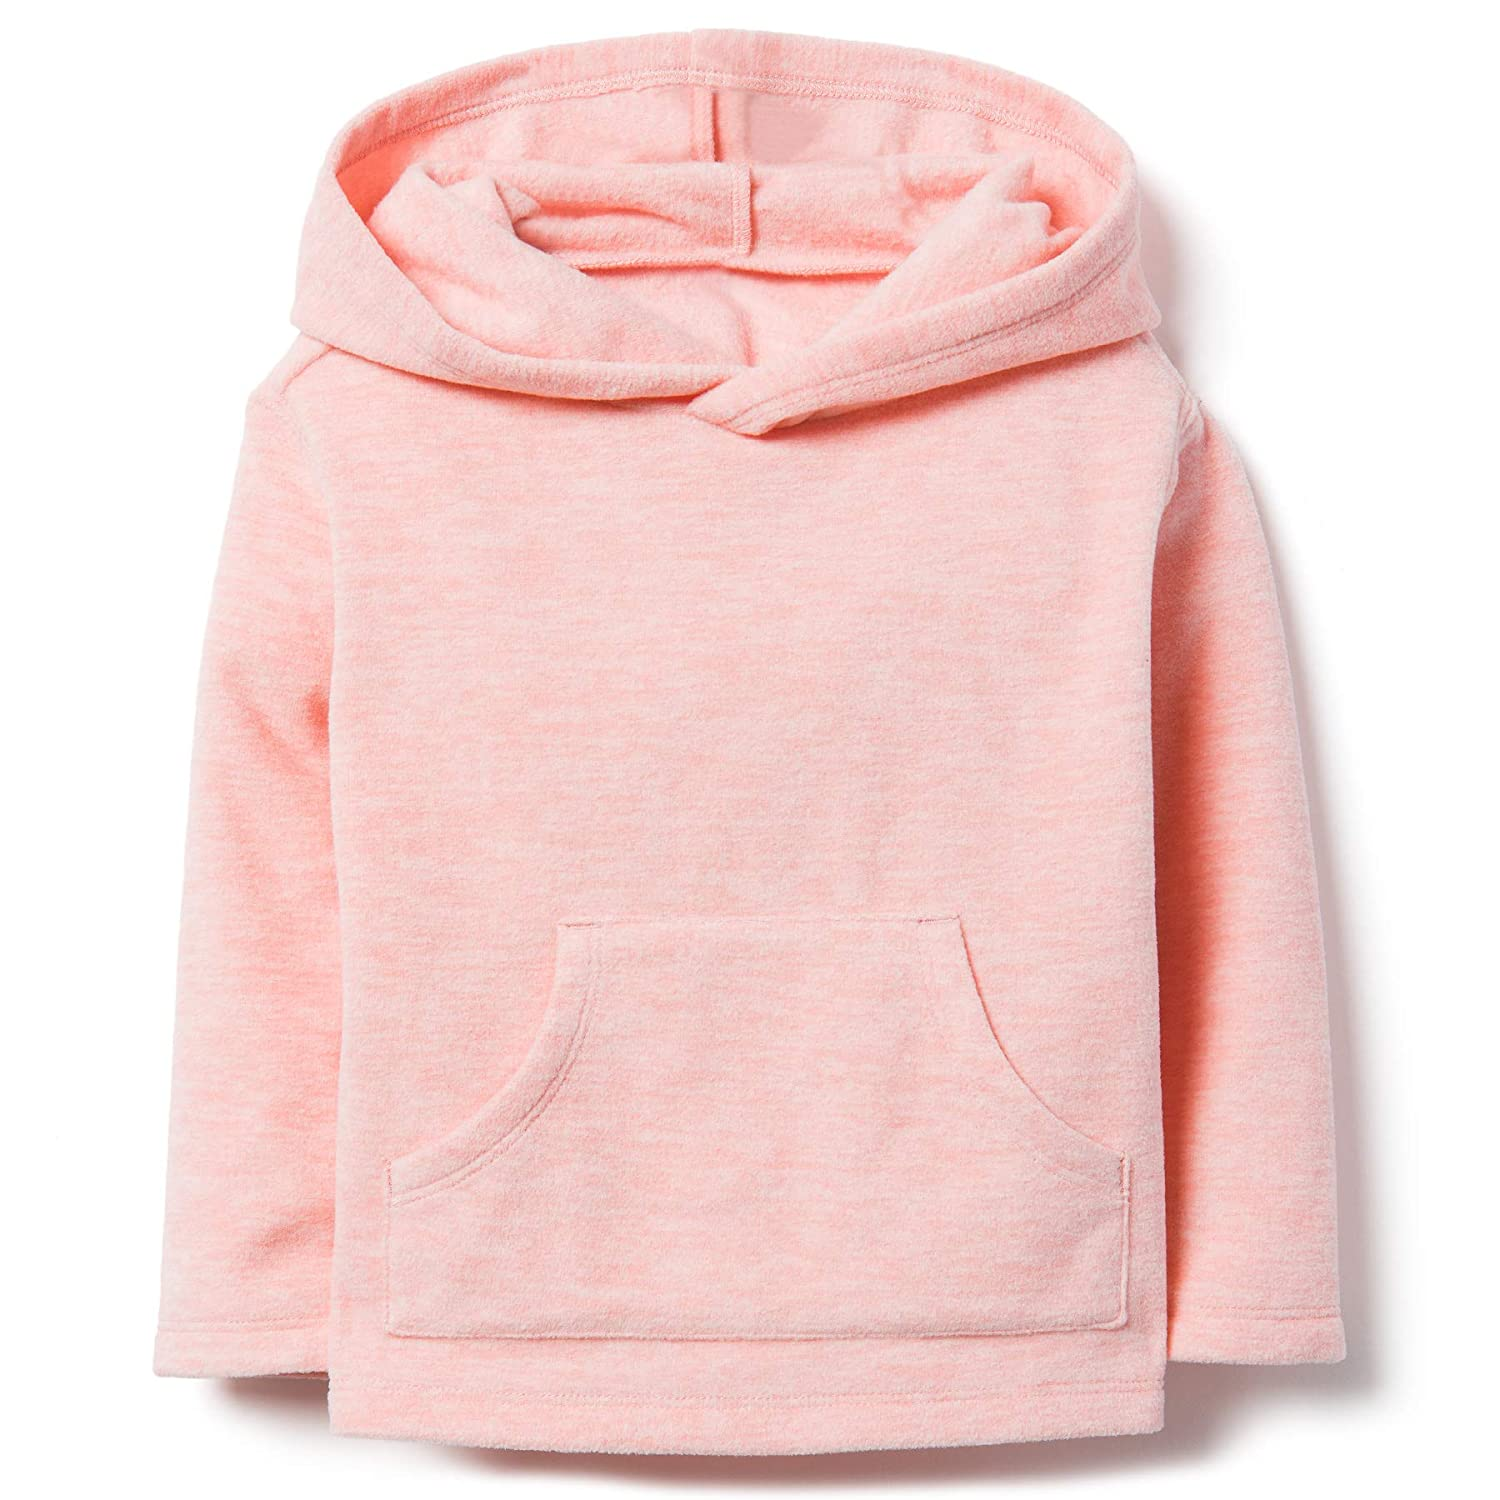 Crazy 8 Girls Long Sleeve Knit Hooded Top